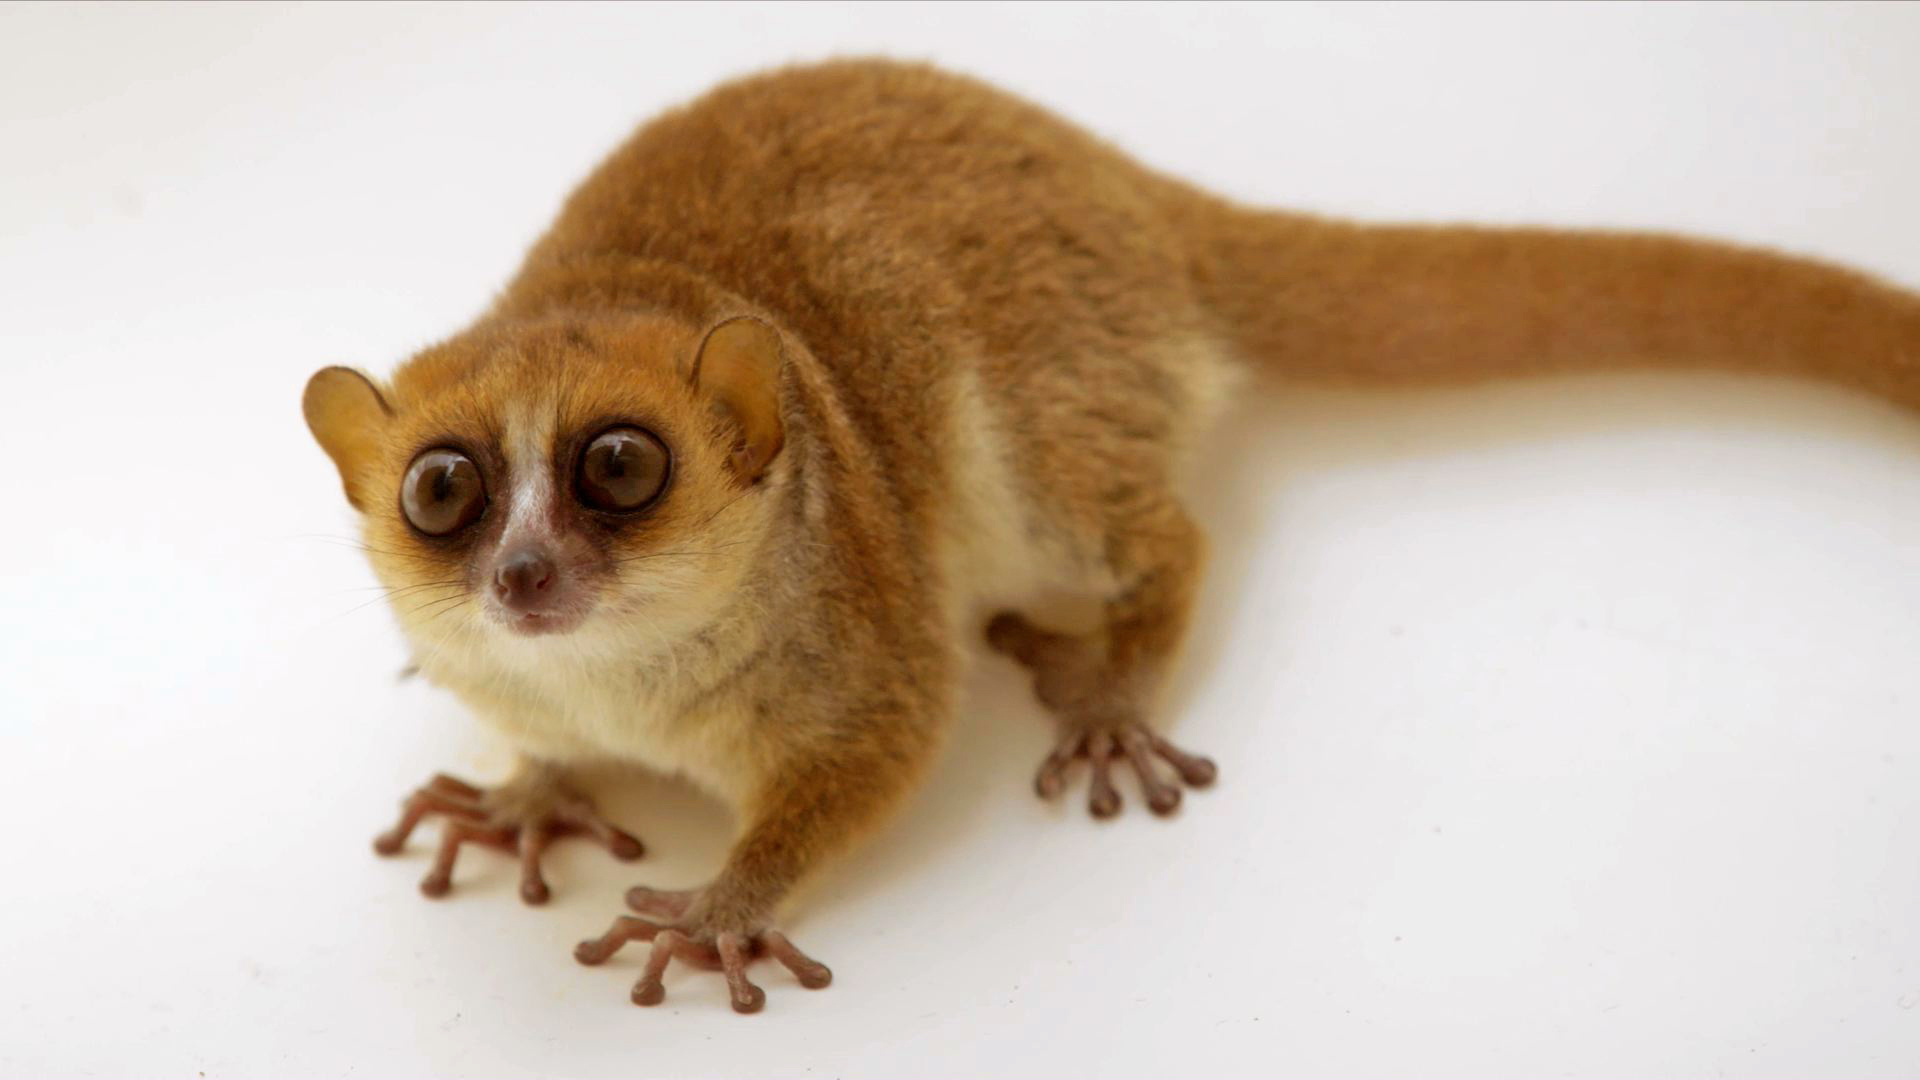 Creature Clip: Rufous Mouse Lemur - 2:53 - When an animal won't stay still long enough for to snap a photo, adding it to the Photo Ark can be a painful process. Watch Joel Sartore's photo shoot with this fast-moving brown mouse lemur.